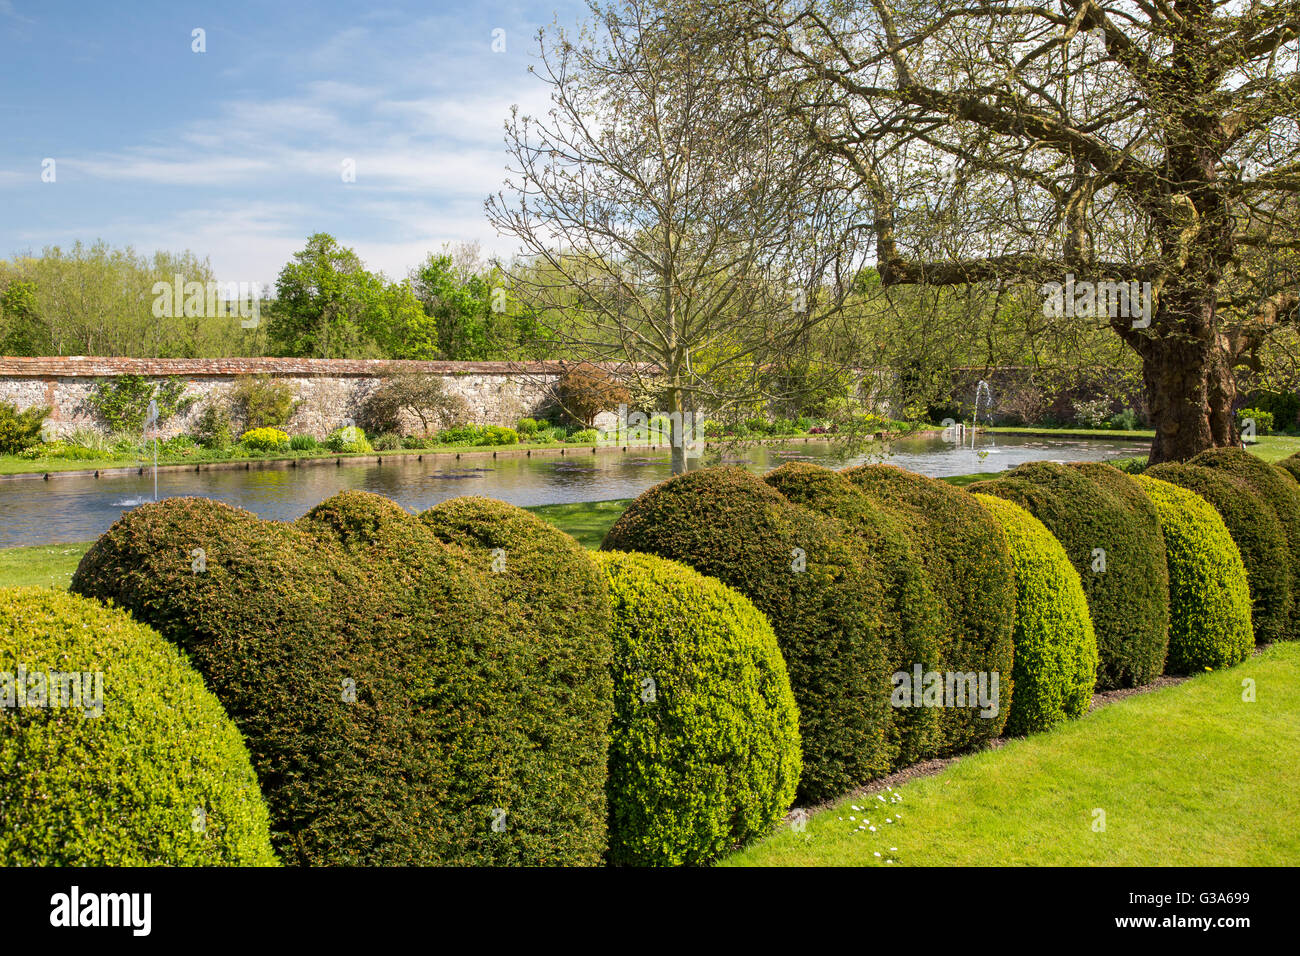 Landscaped Gardens At St Cross Hospital And Almshouse Of Noble Poverty In  Winchester, England